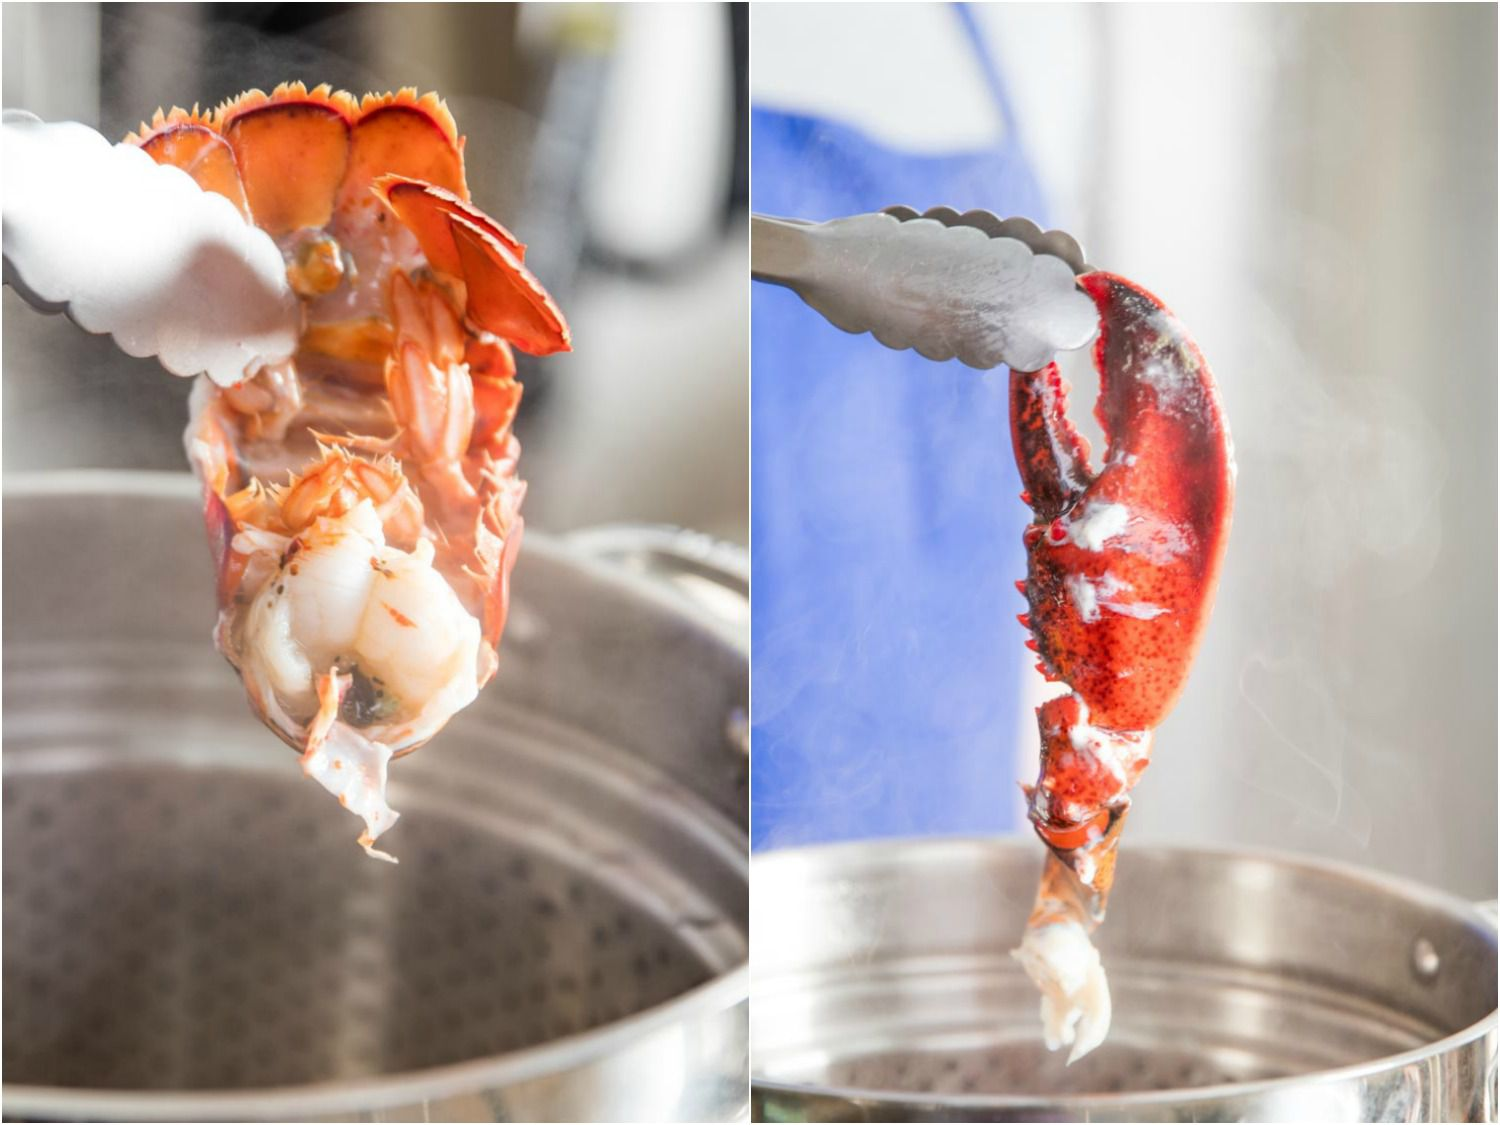 20170407-lobster-bisque-vicky-wasik-steaming-claws-tail.jpg